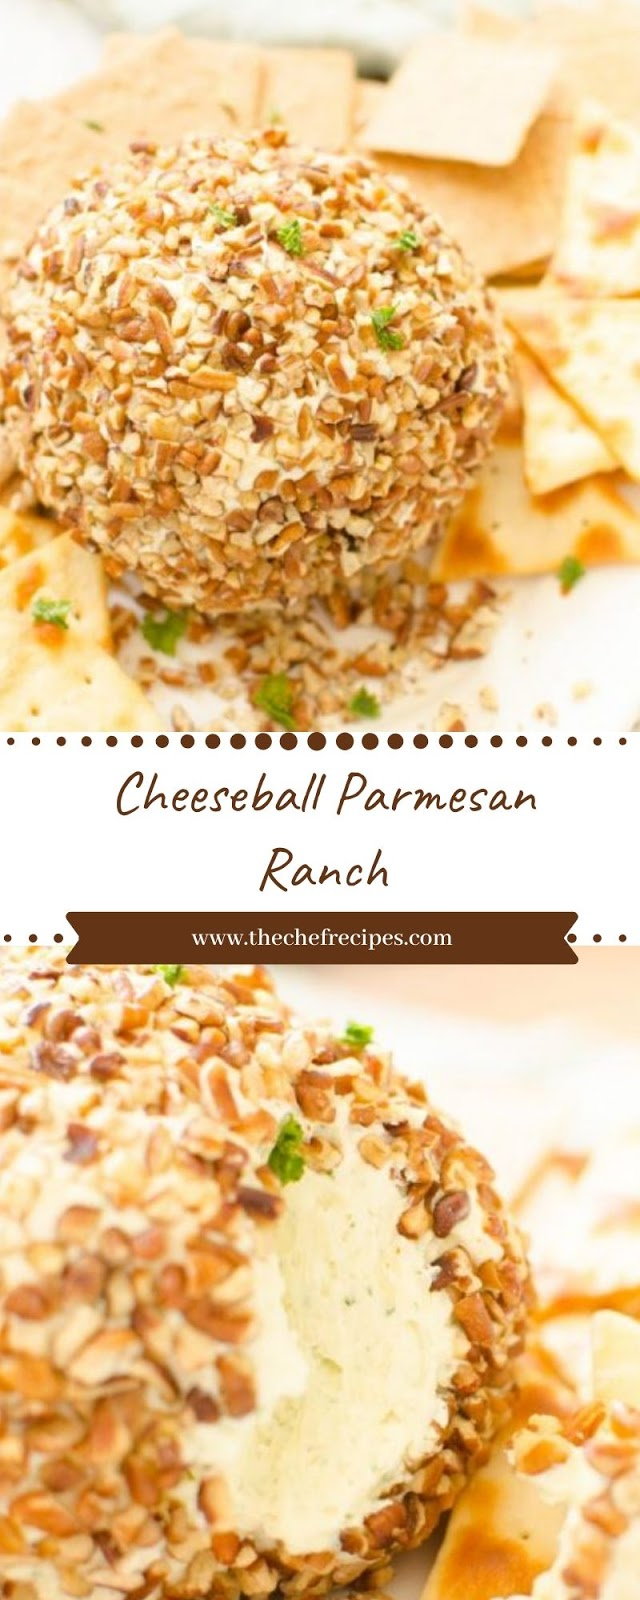 Cheeseball Parmesan Ranch